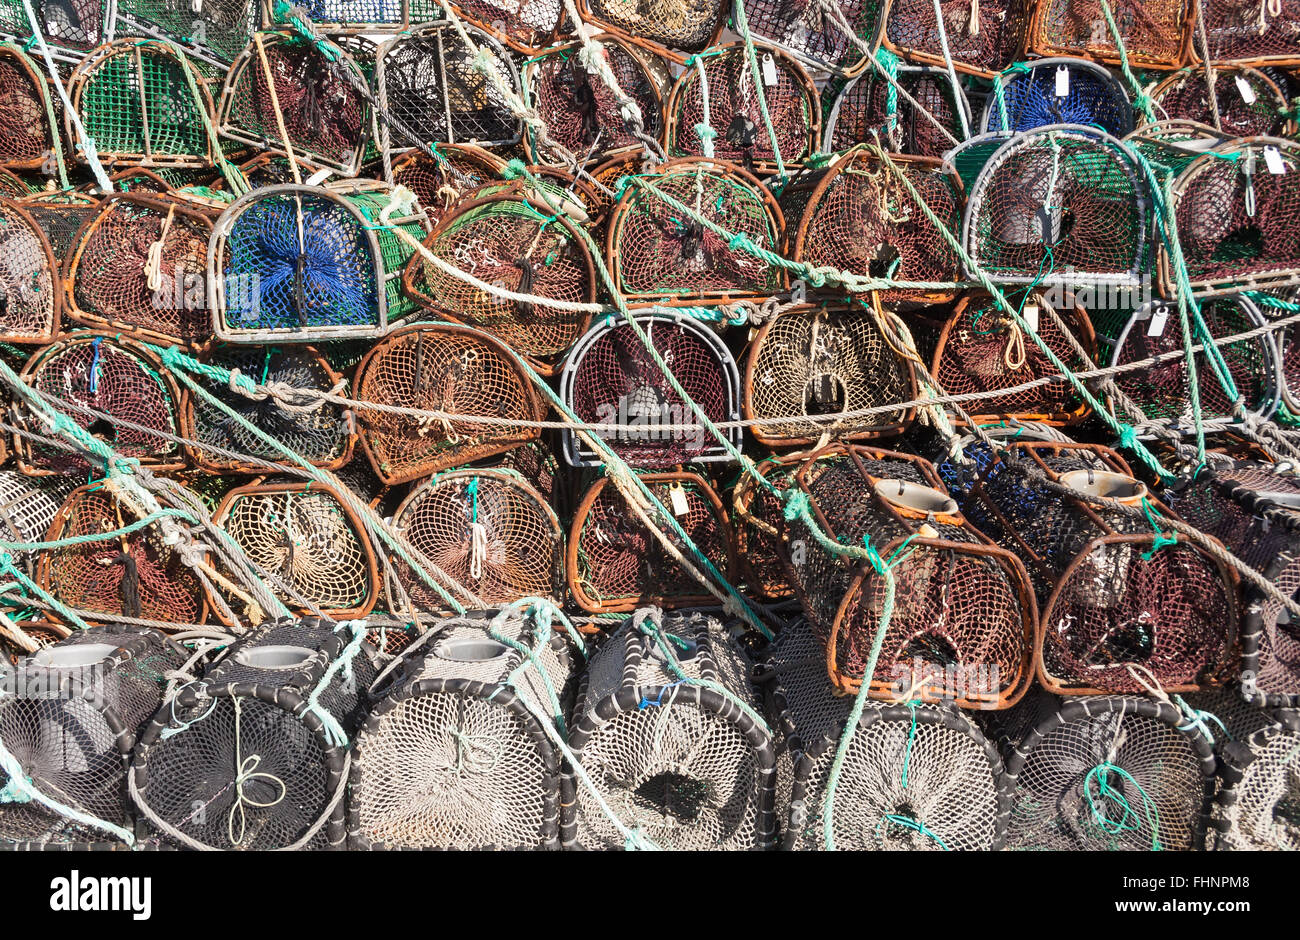 Stacked lobster and crab traps - Stock Image